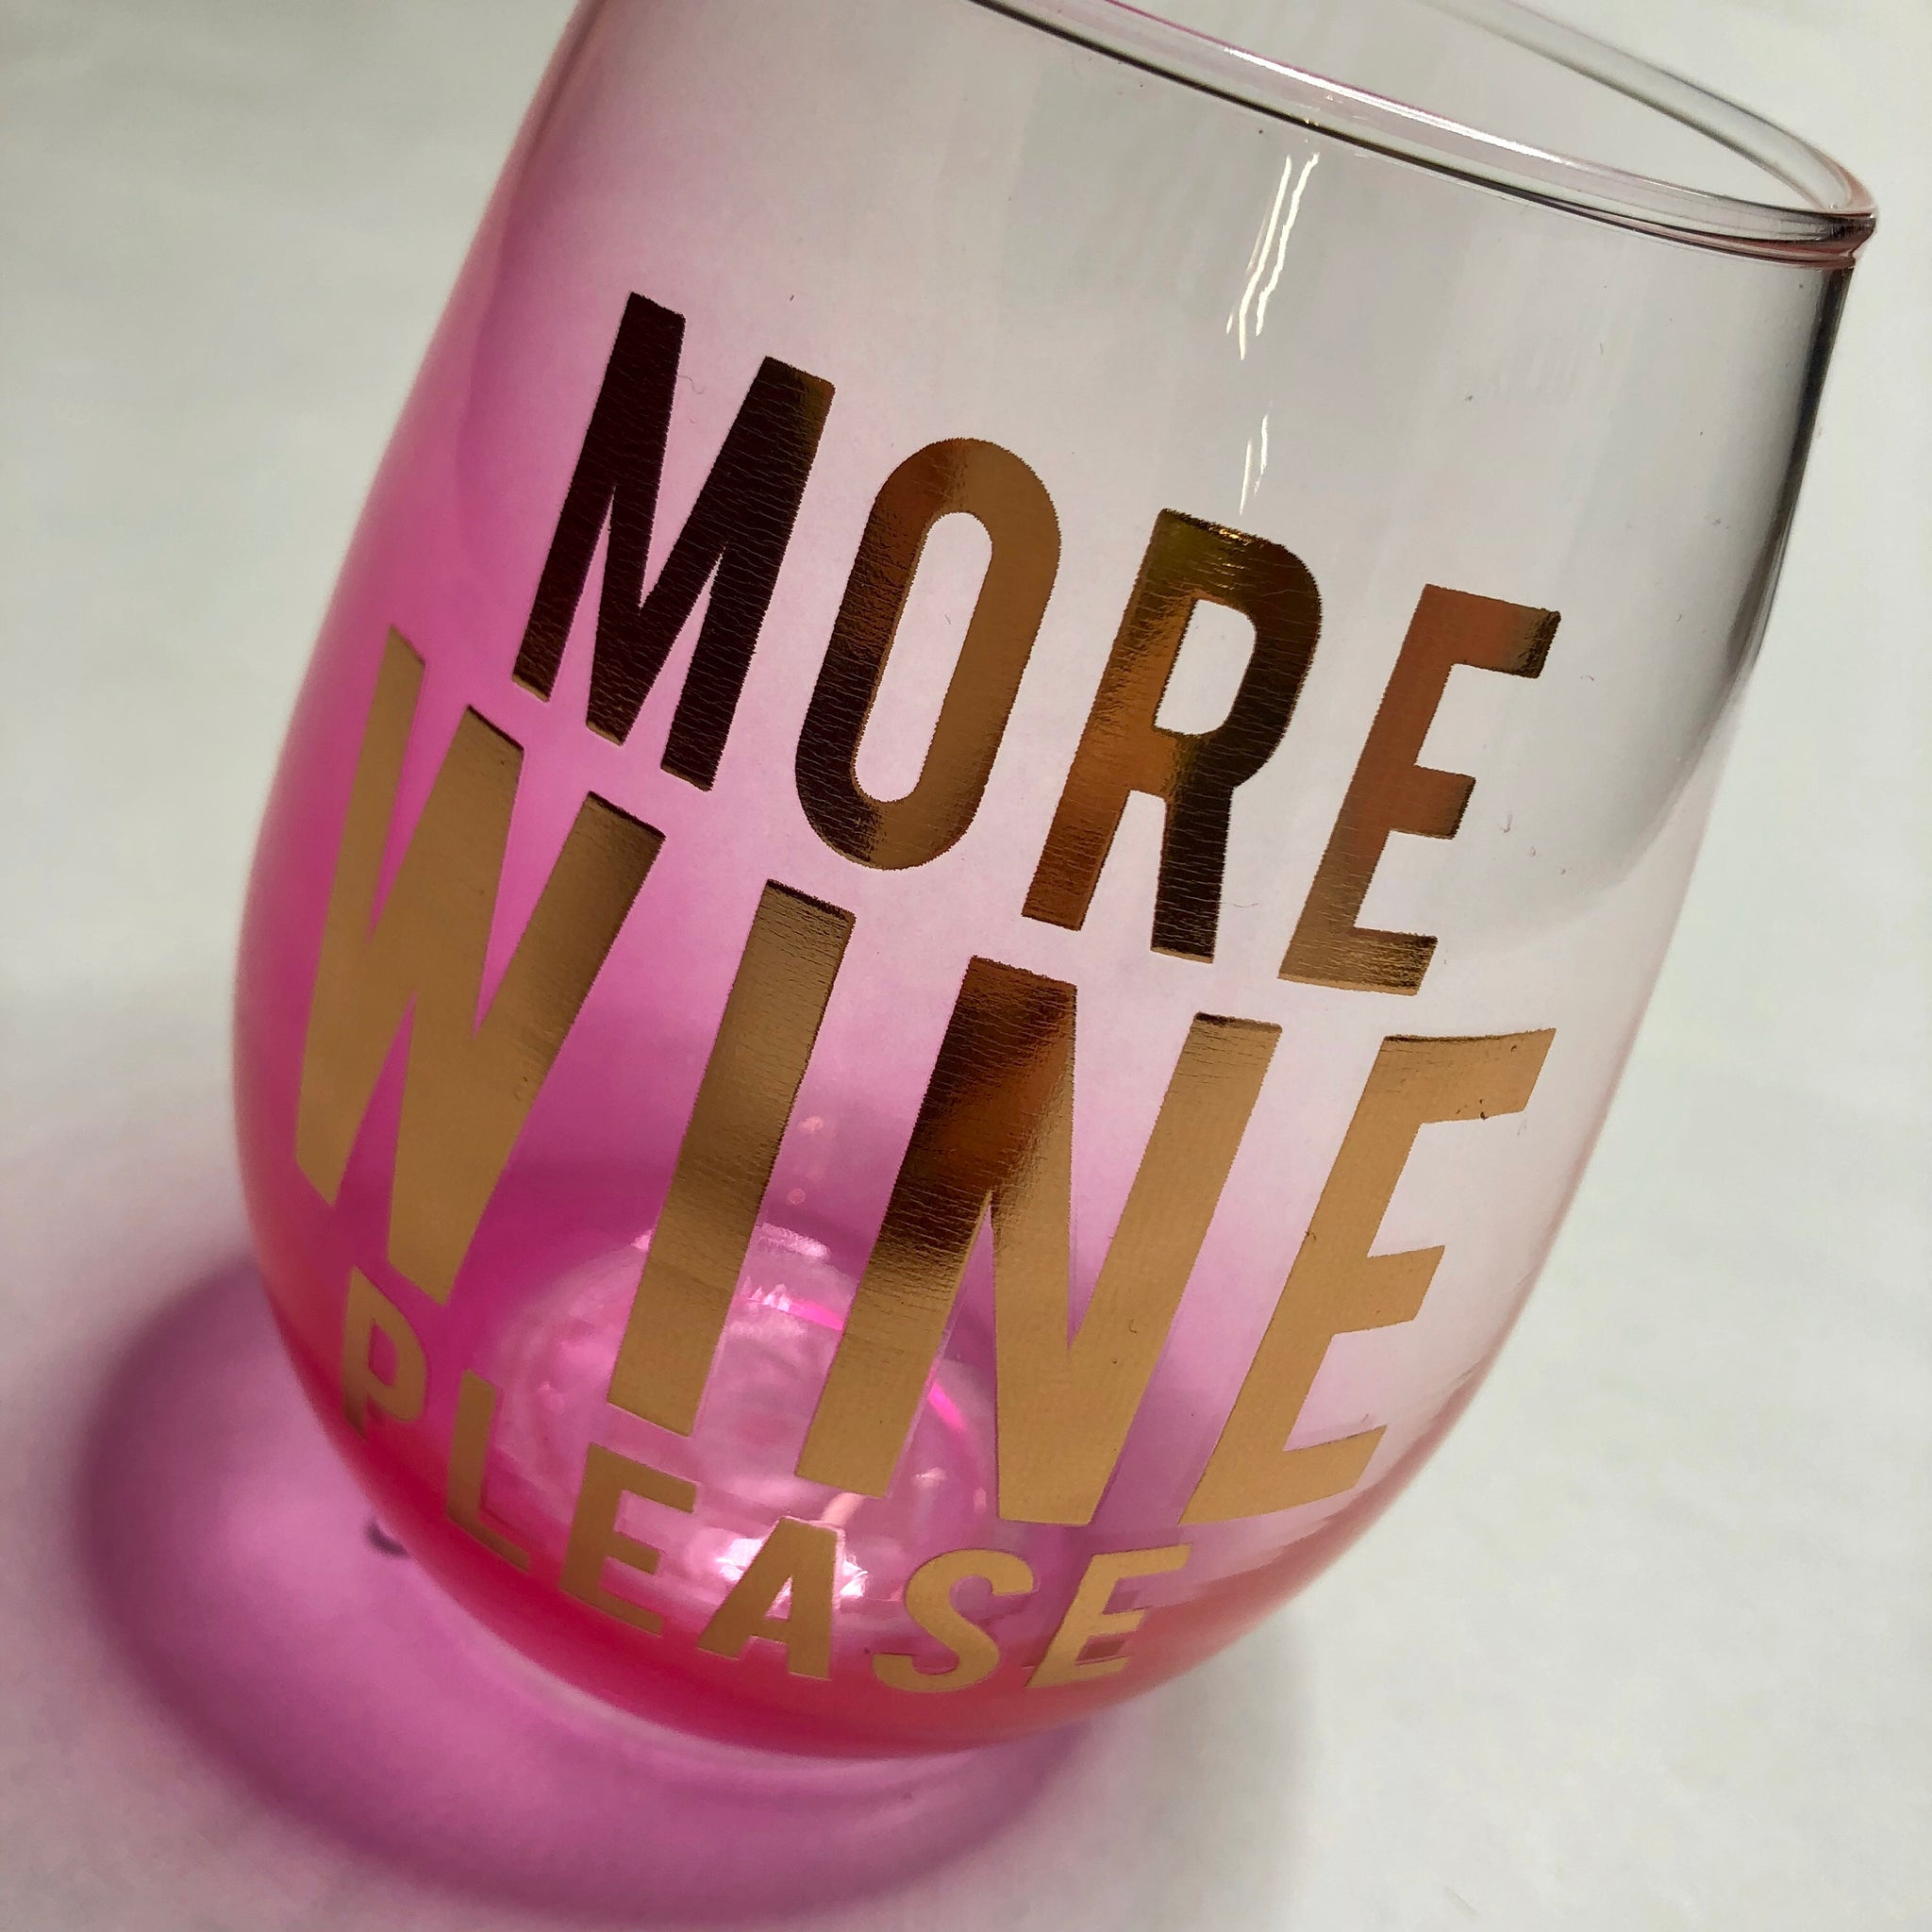 More Wine Please 20oz Stemless Wineglass